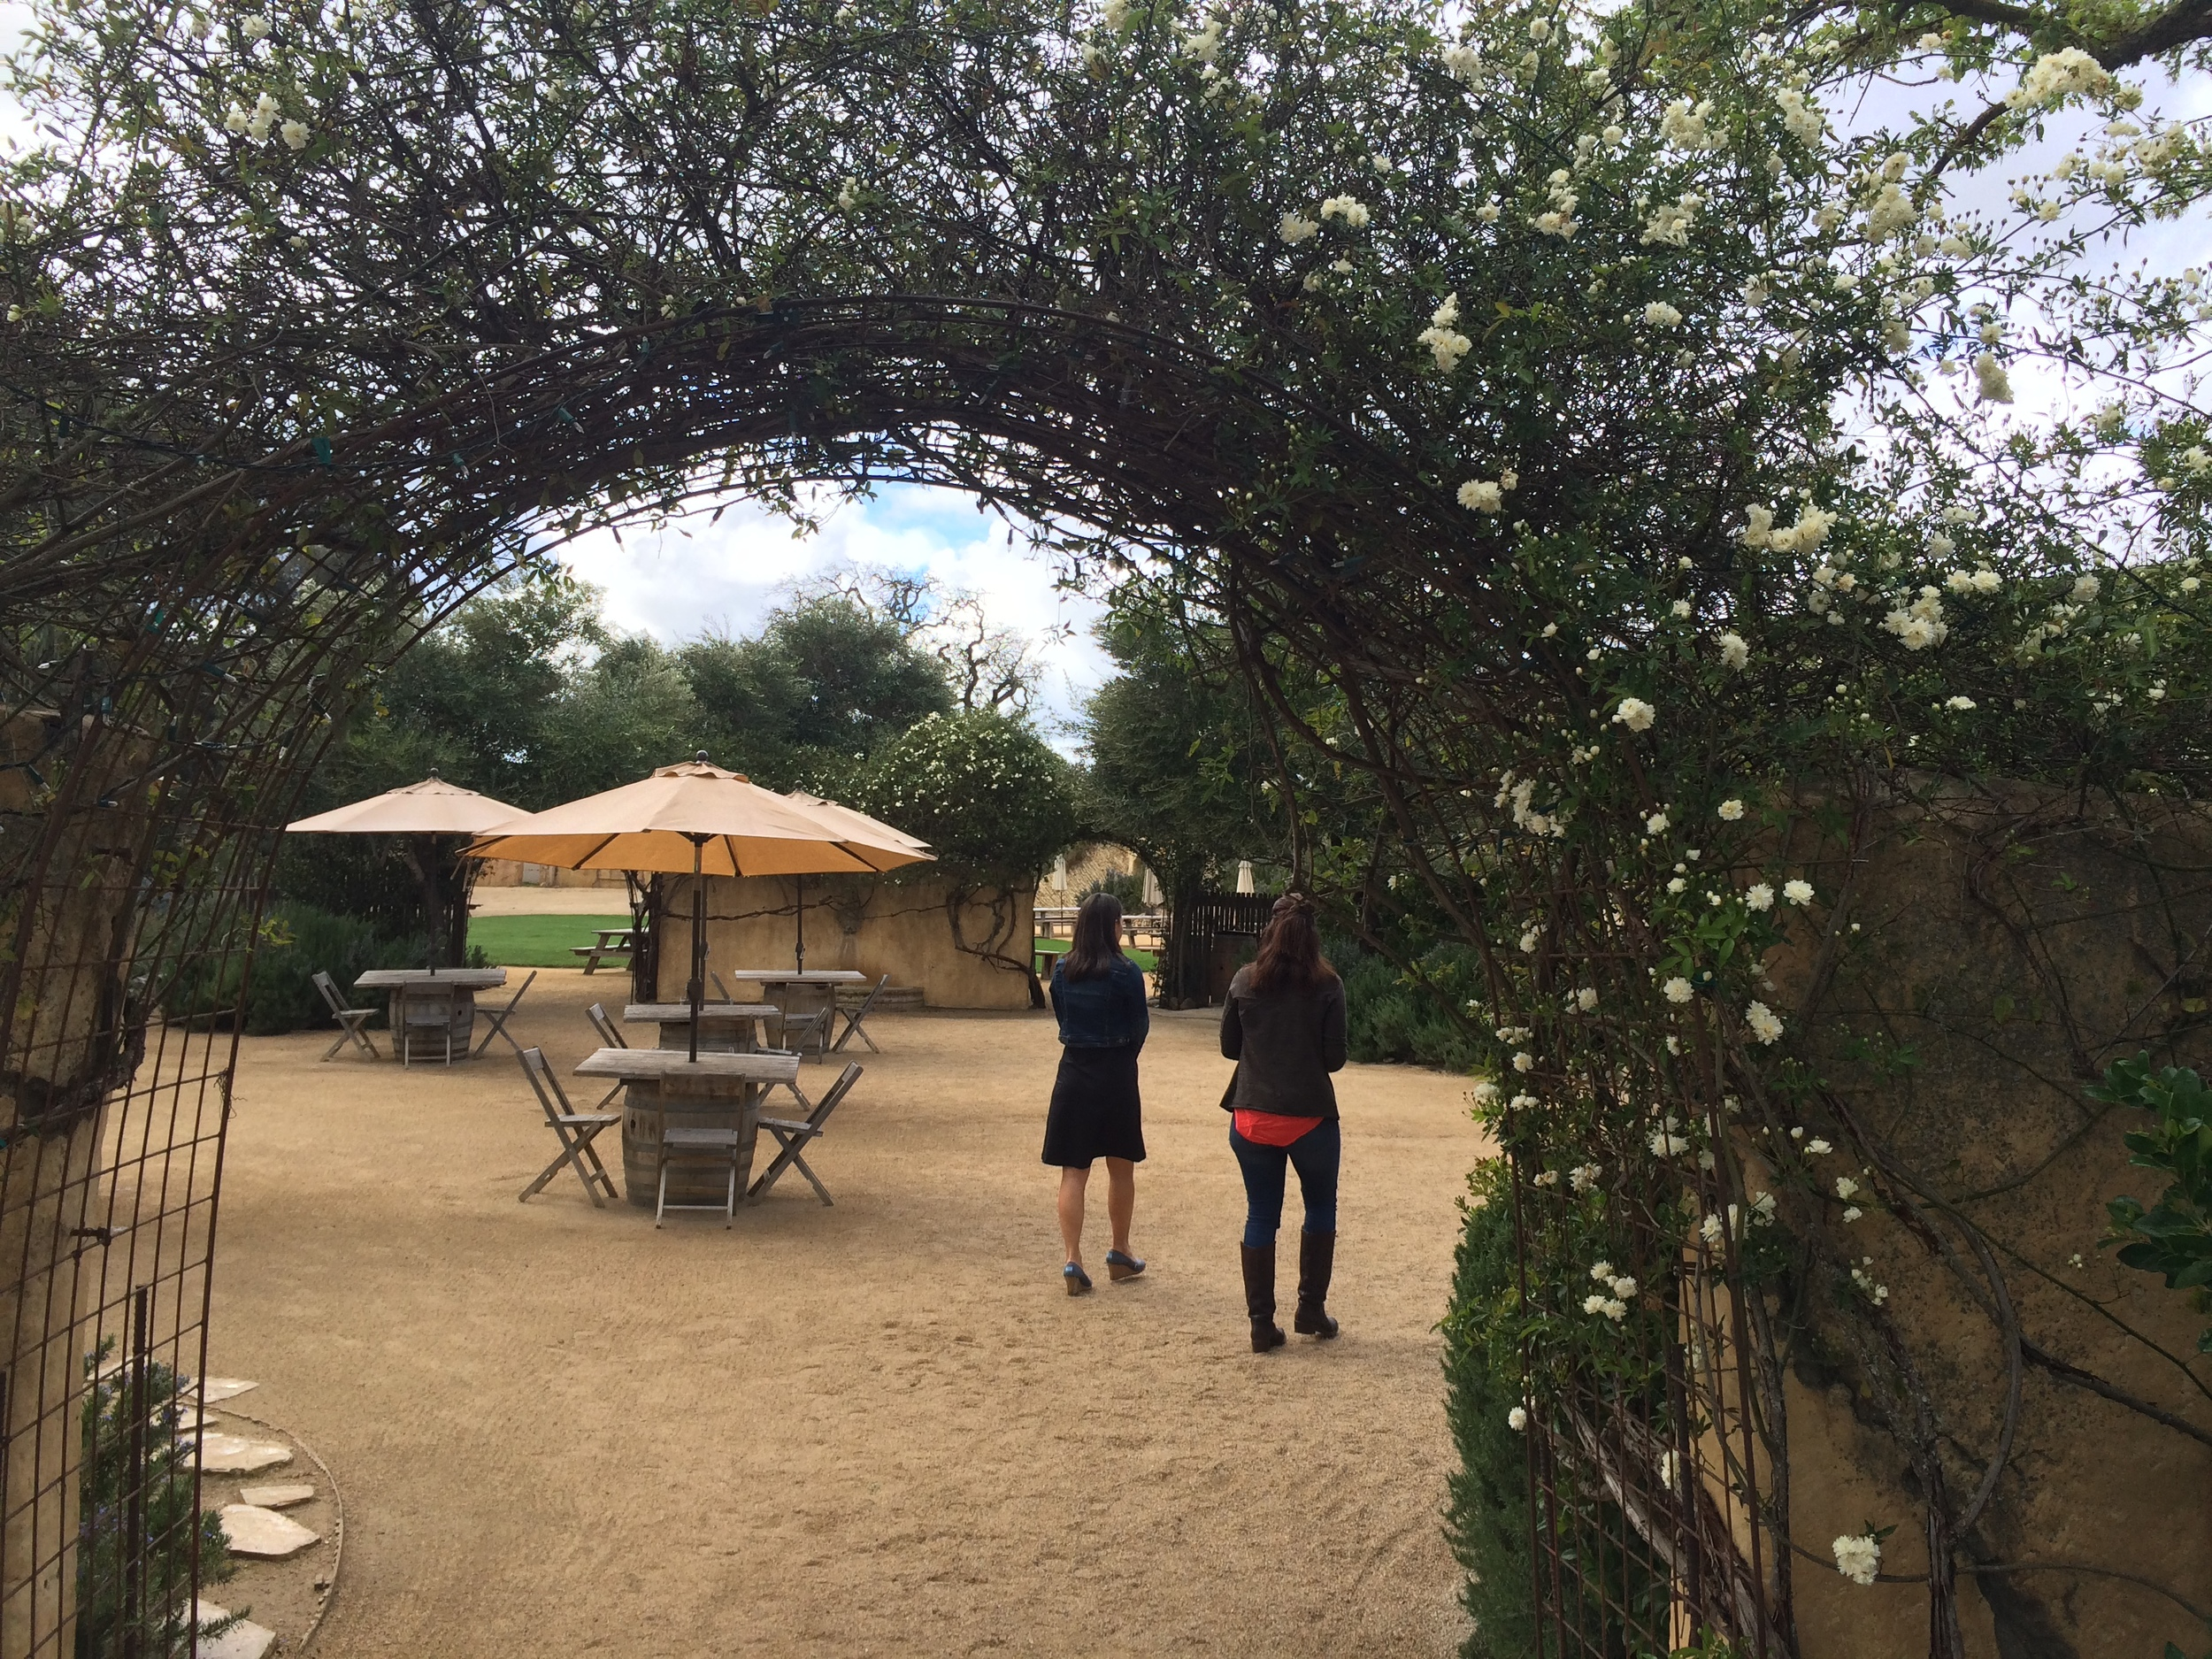 Sunstone Winery in Santa Ynez, CA.